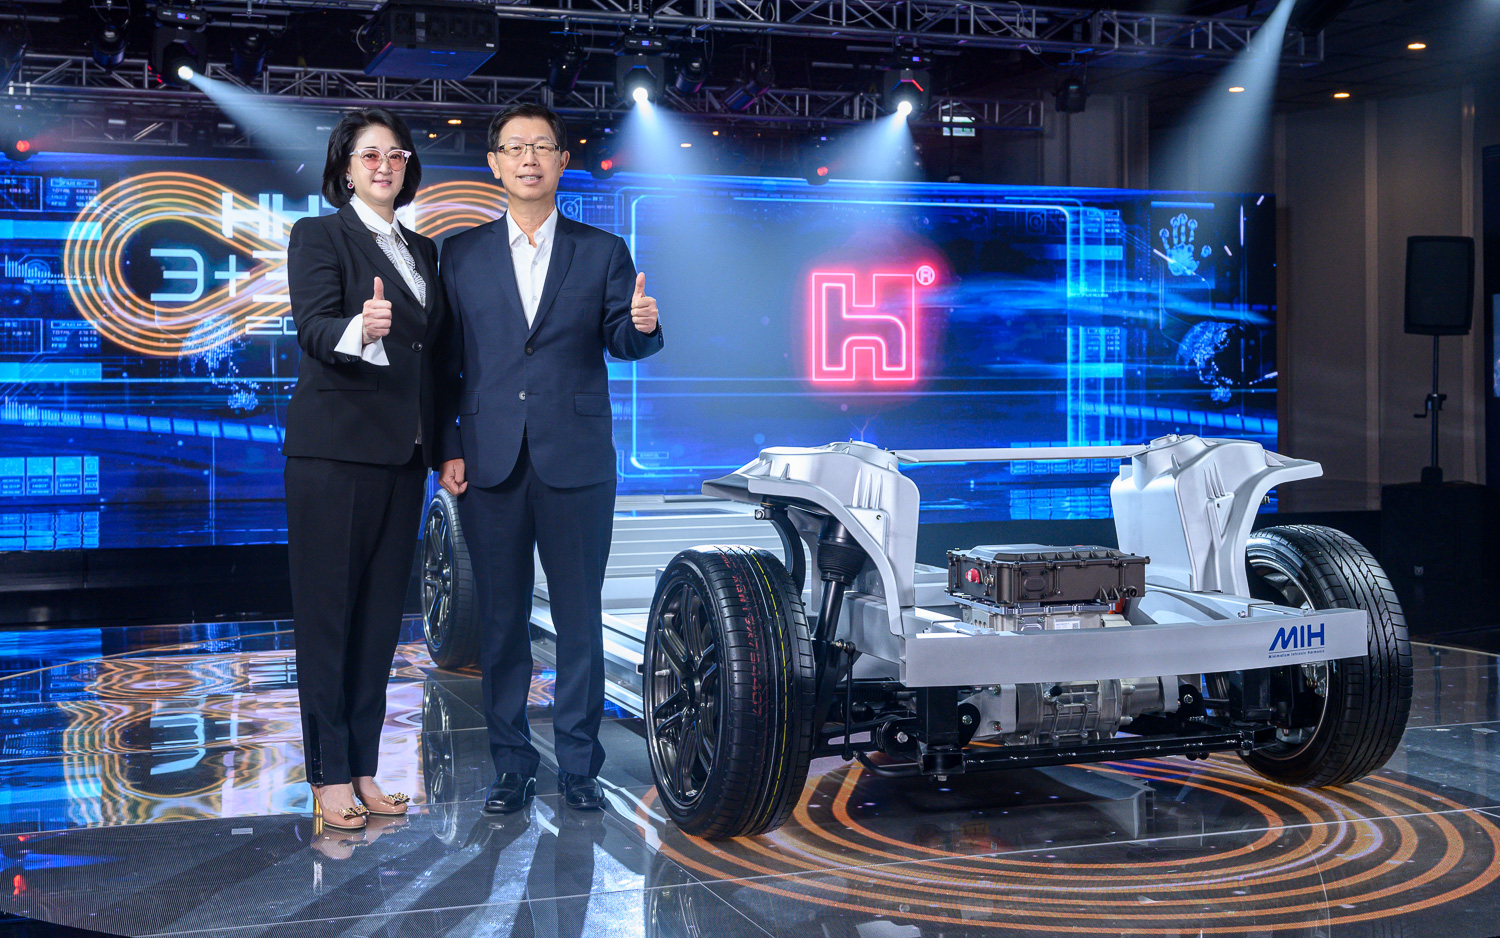 Foxconn wants to break into EV market with MIH, an open platform for EVs